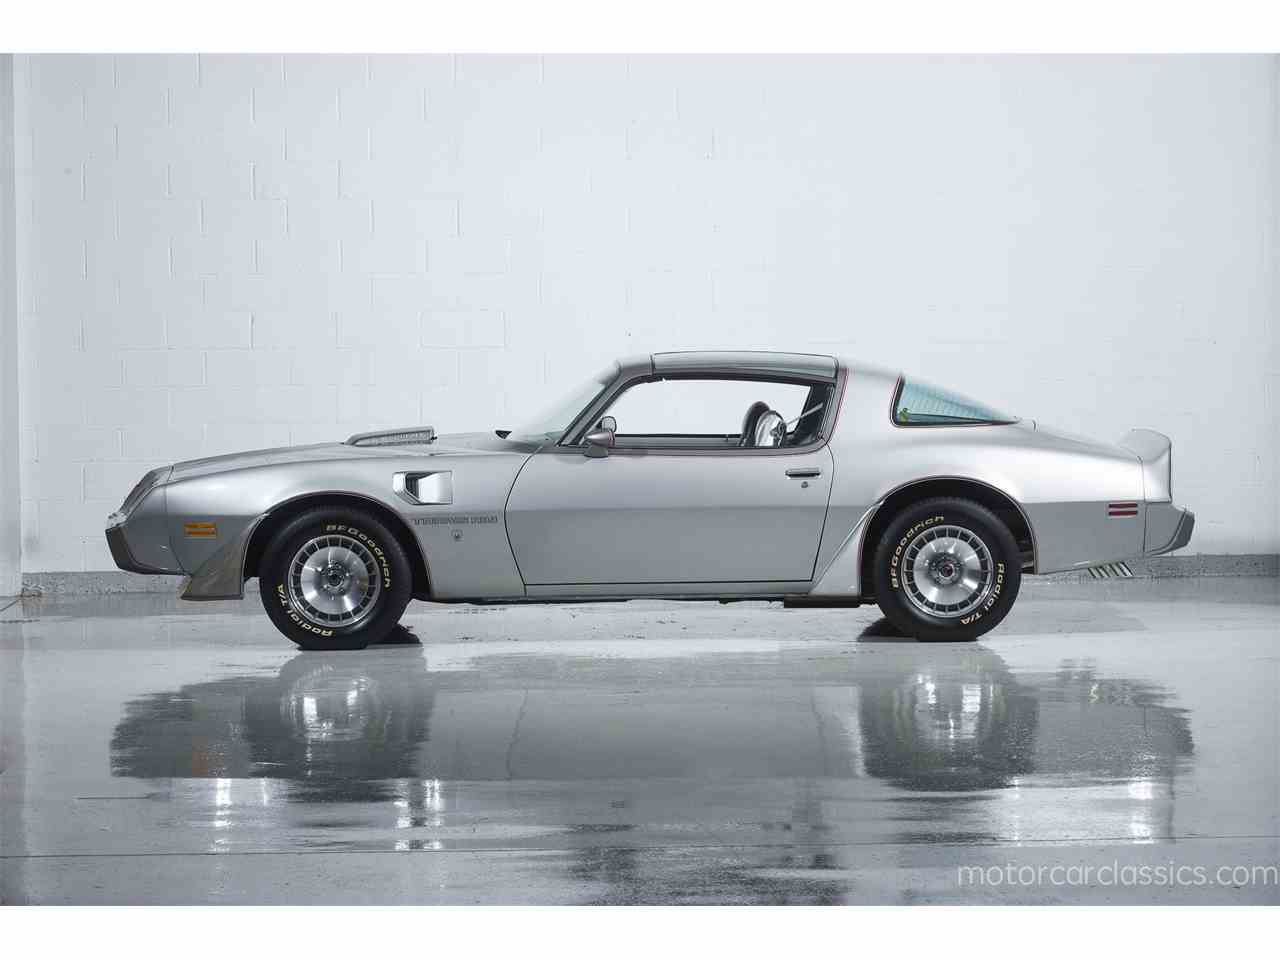 Large Picture of '79 Firebird Trans Am located in New York - $49,900.00 - MBN8